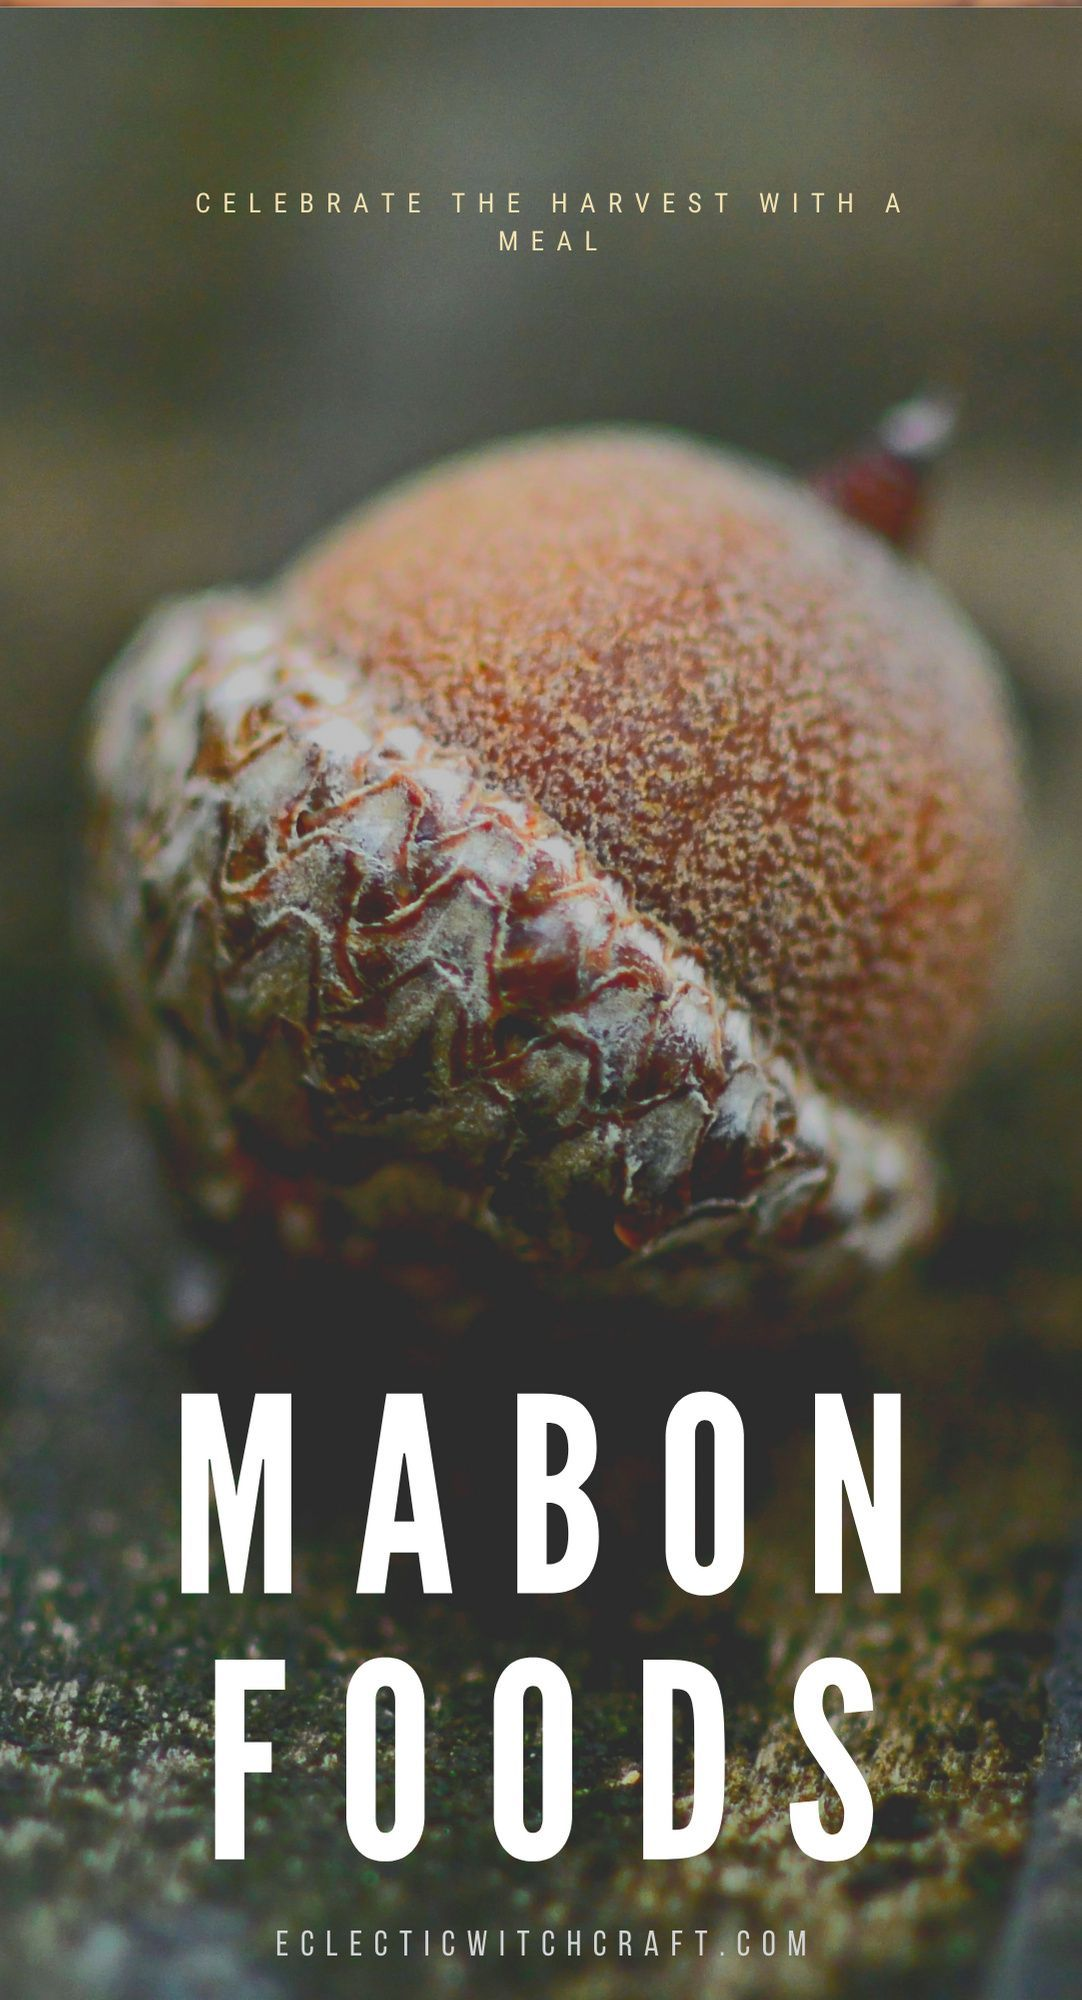 What does a kitchen witch do for Mabon? #witch #witchcraft #pagan #wicca